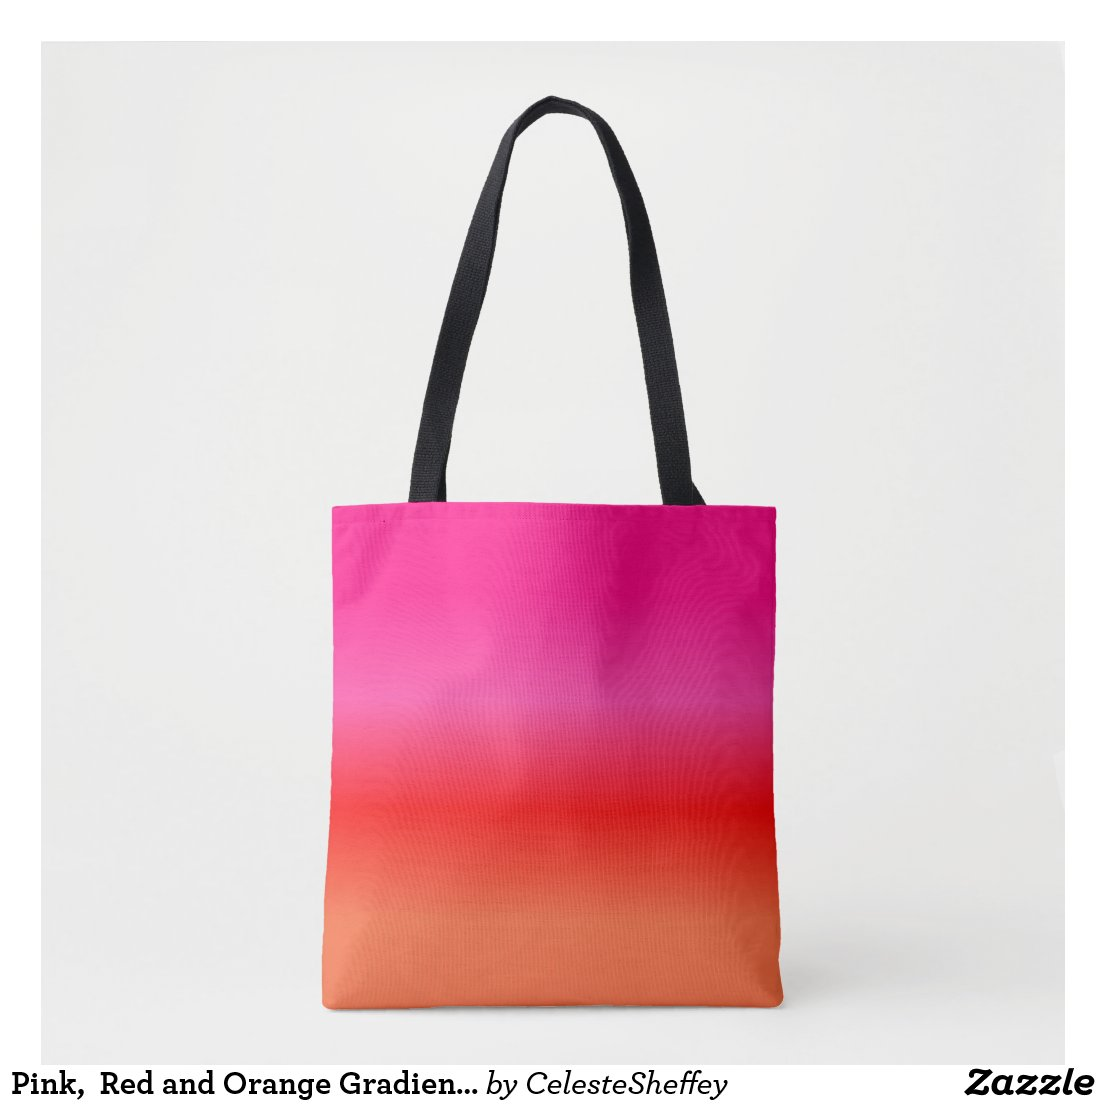 Pink, Red and Orange Gradient tote bag